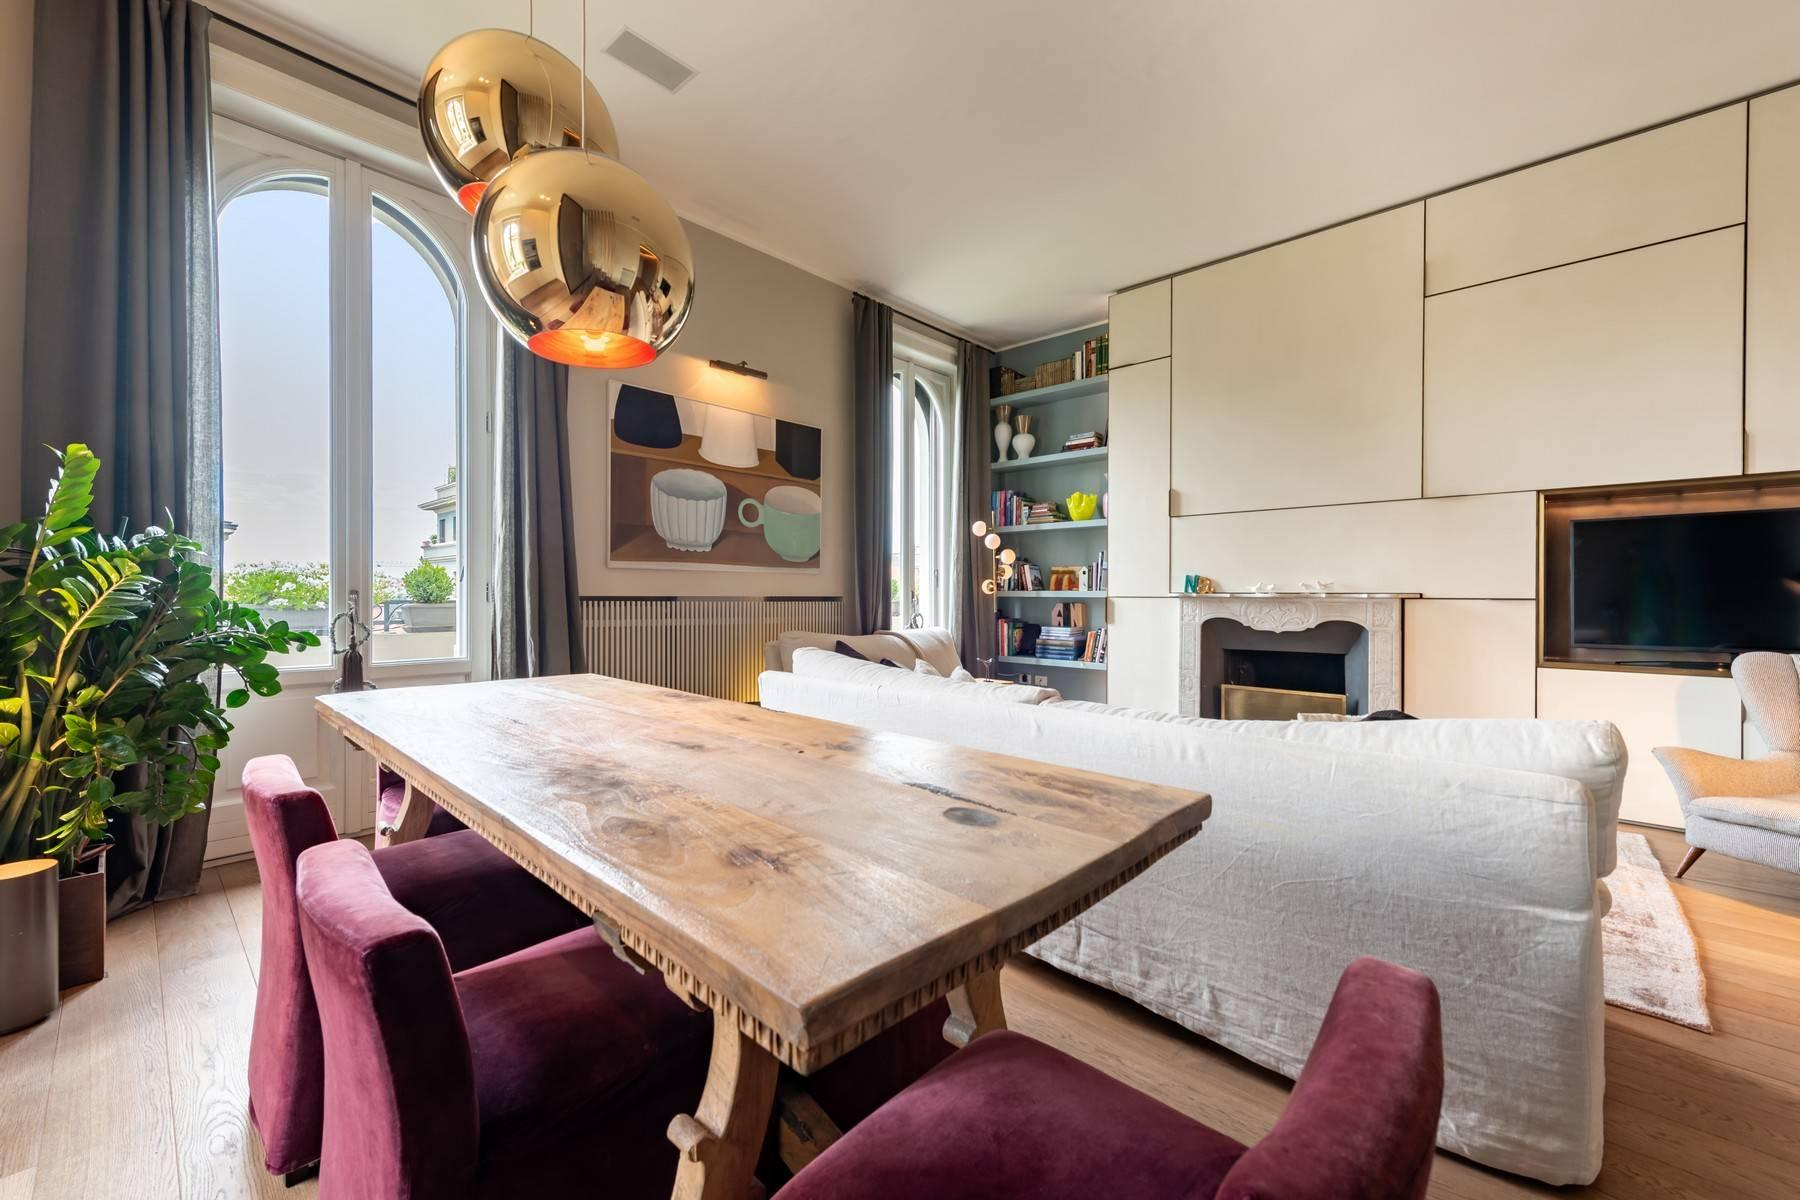 Beautiful penthouse perfectly renovated with great taste - 5